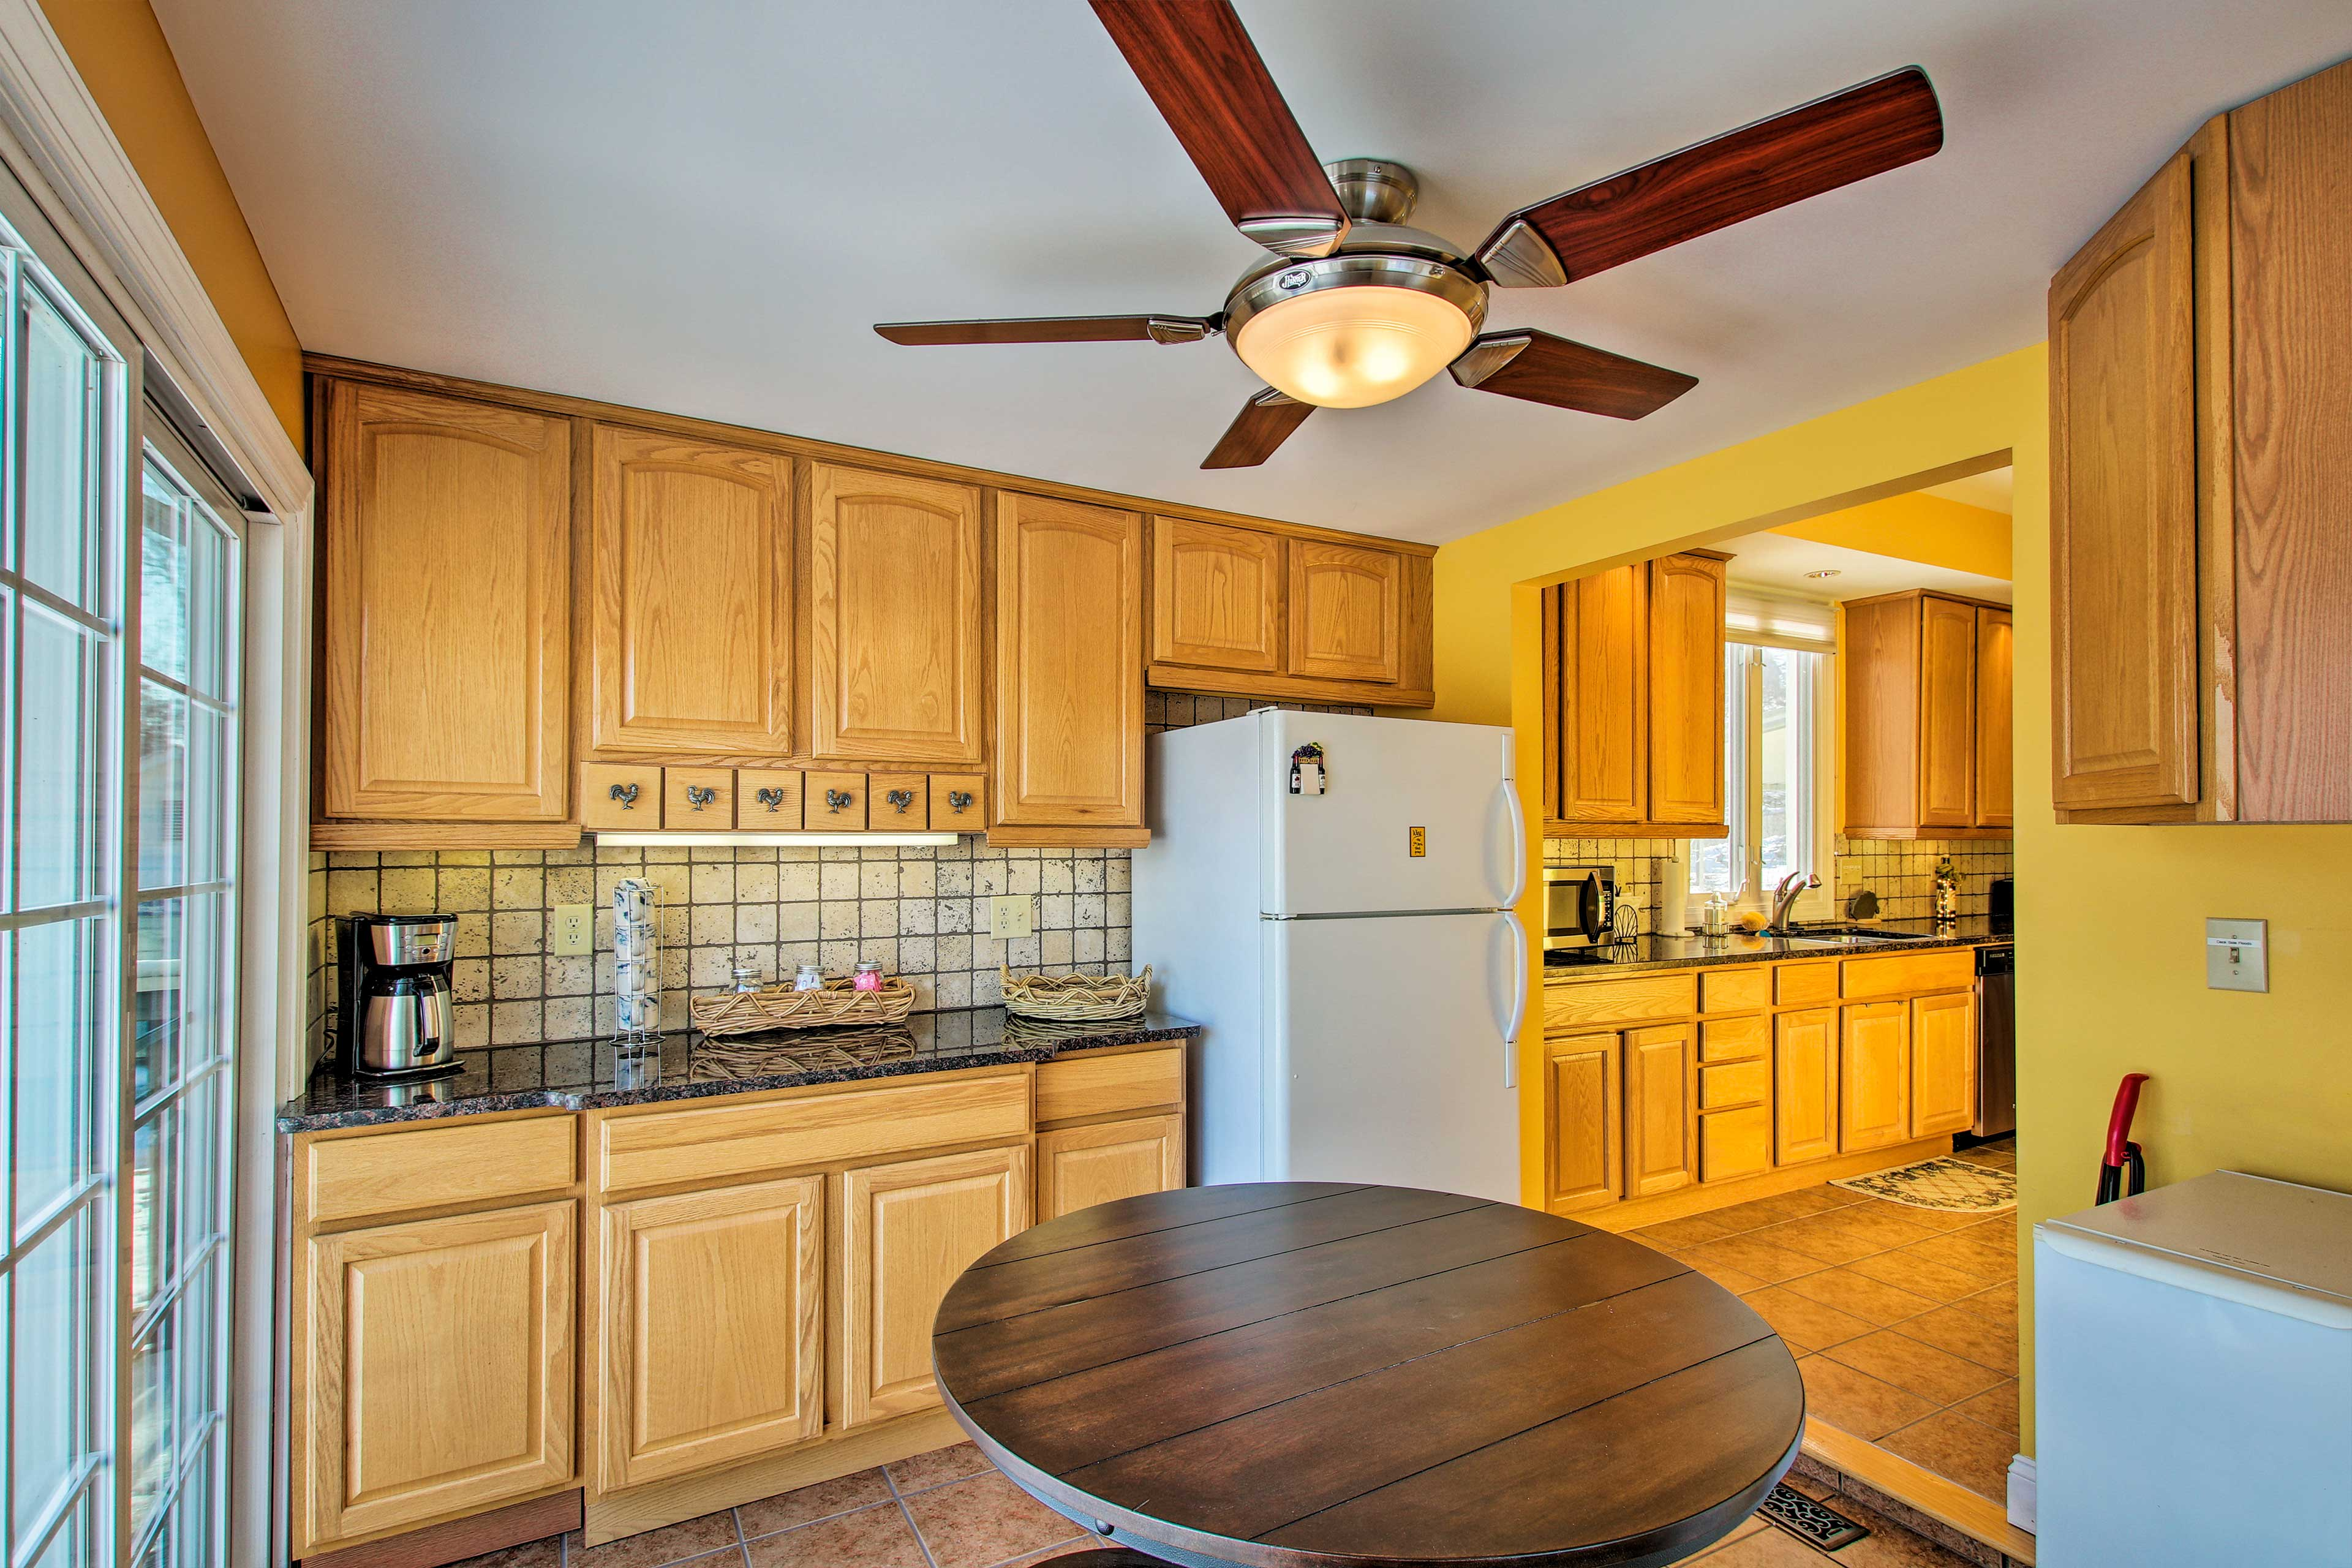 The kitchen is fully equipped for your convenience!